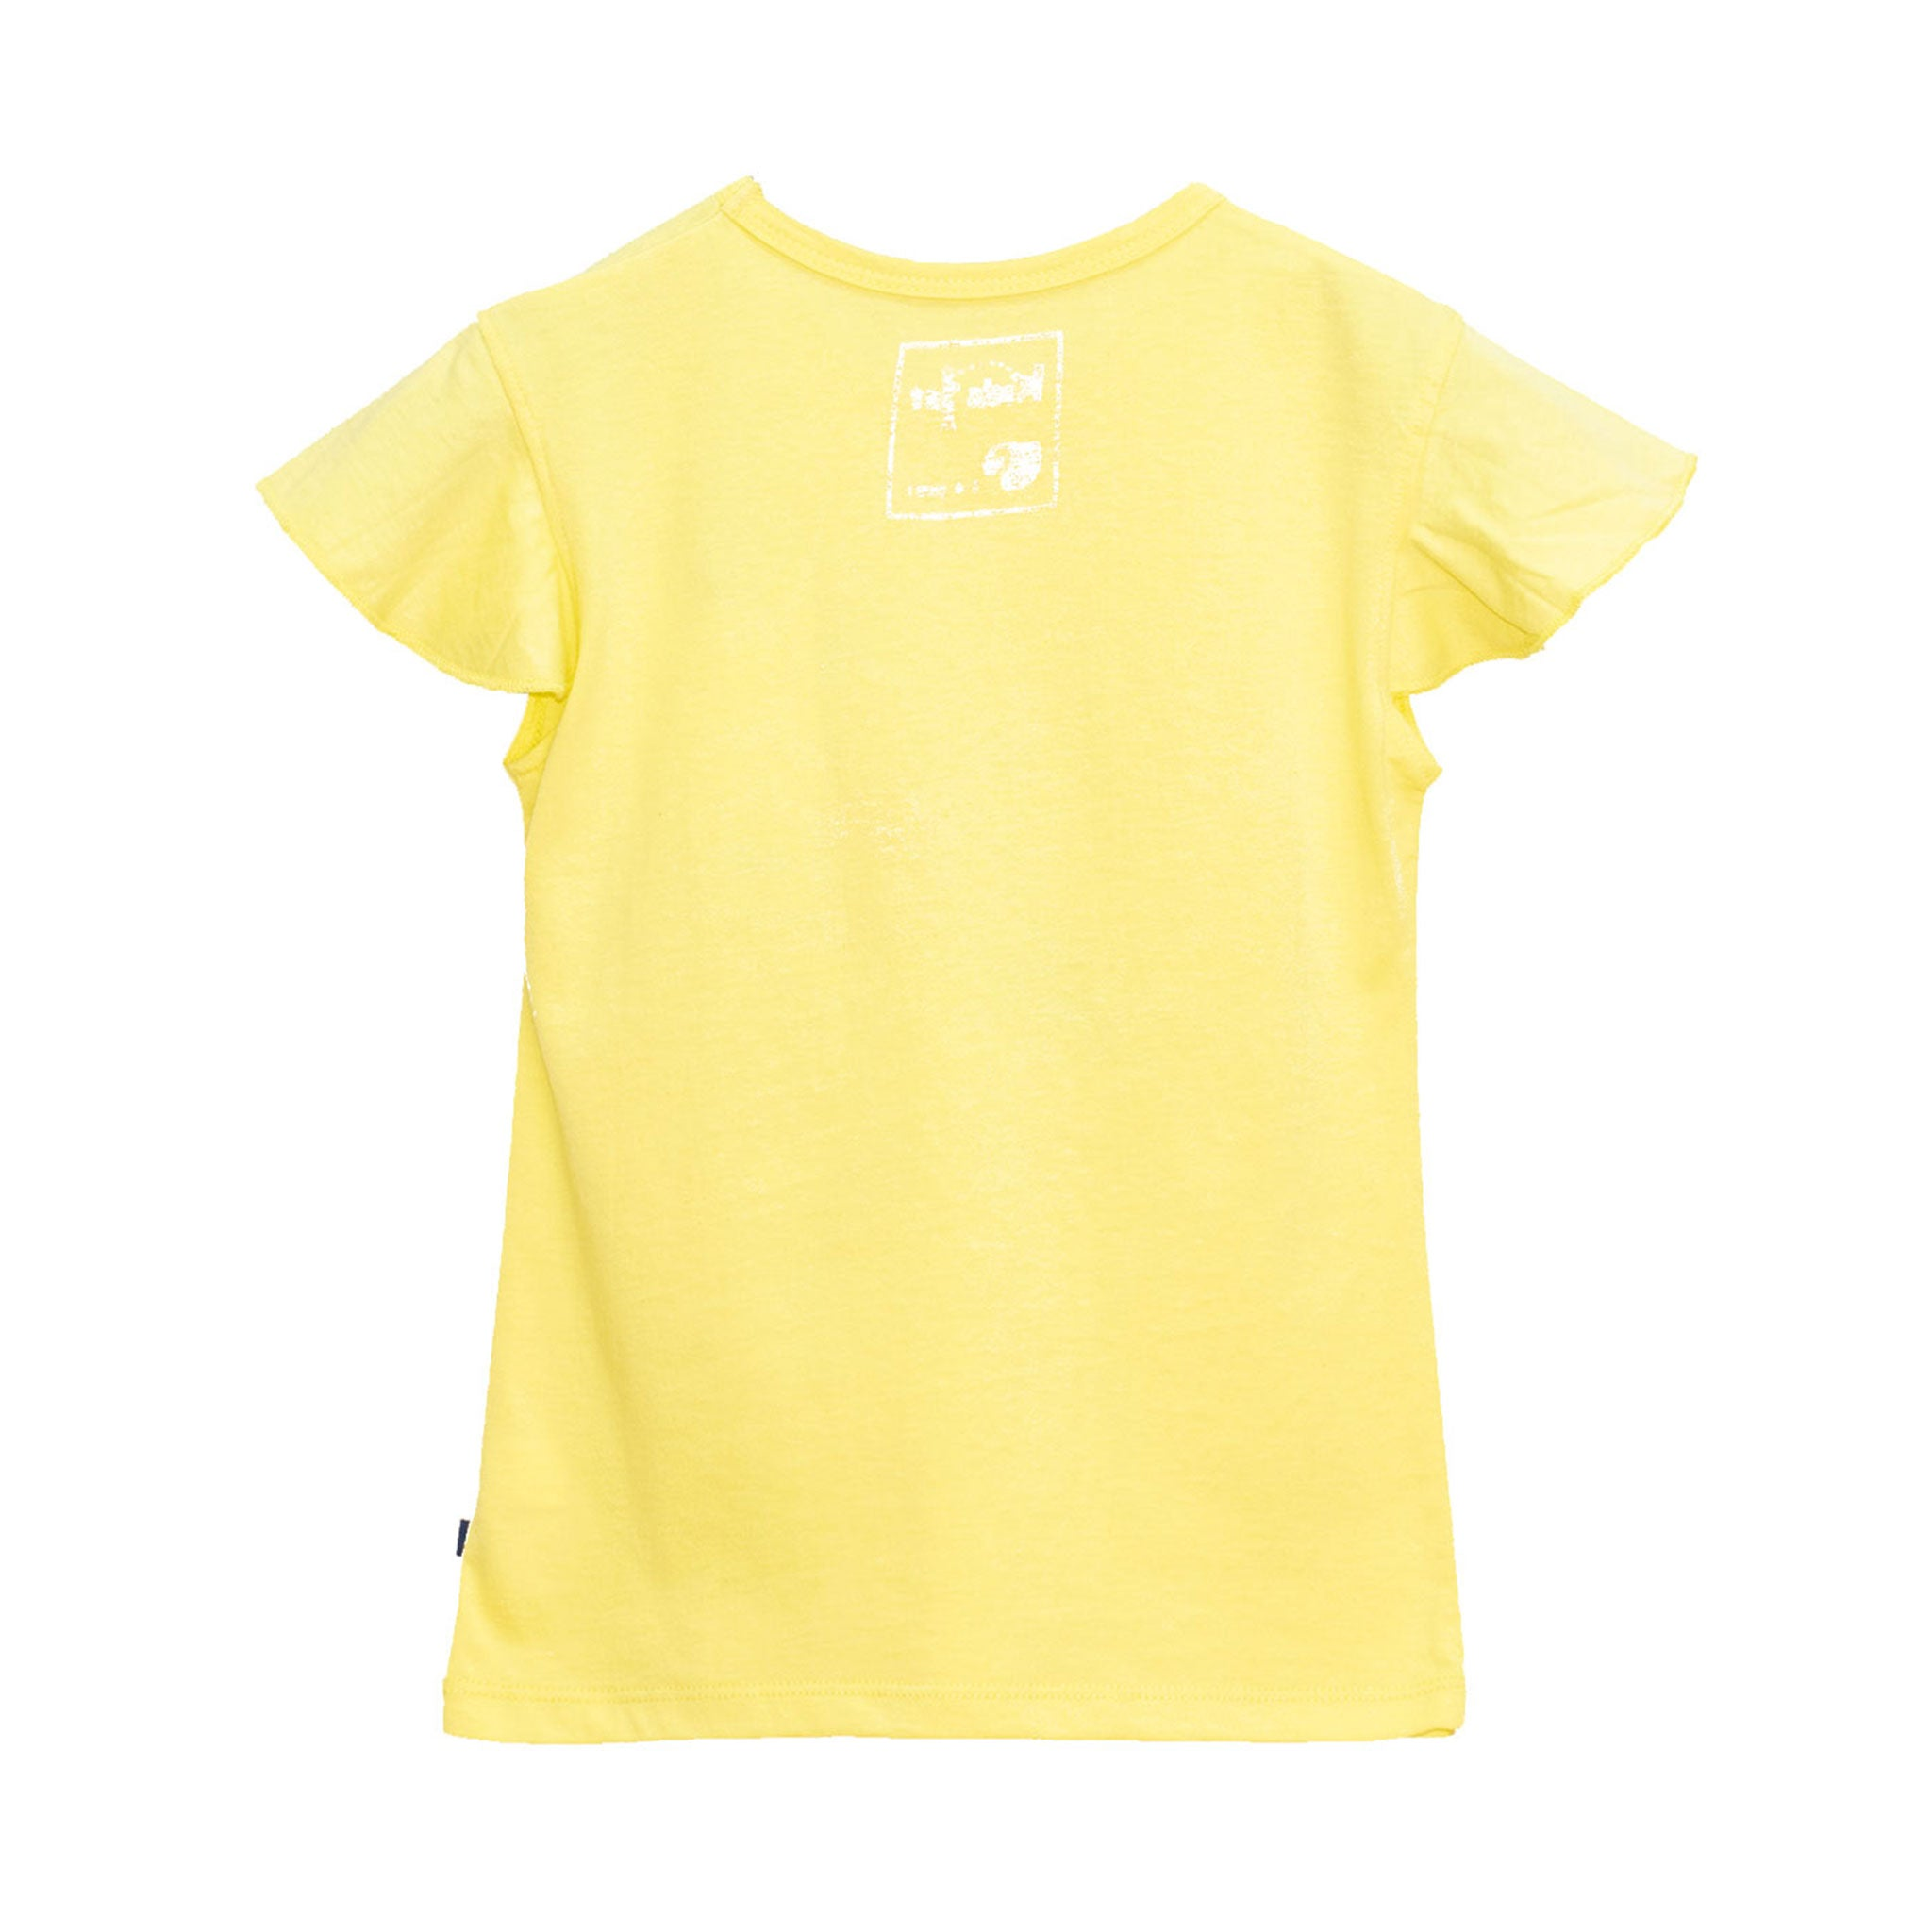 GIRL'S PRINTED TEE - YELLOW GLITTER TOUCANS